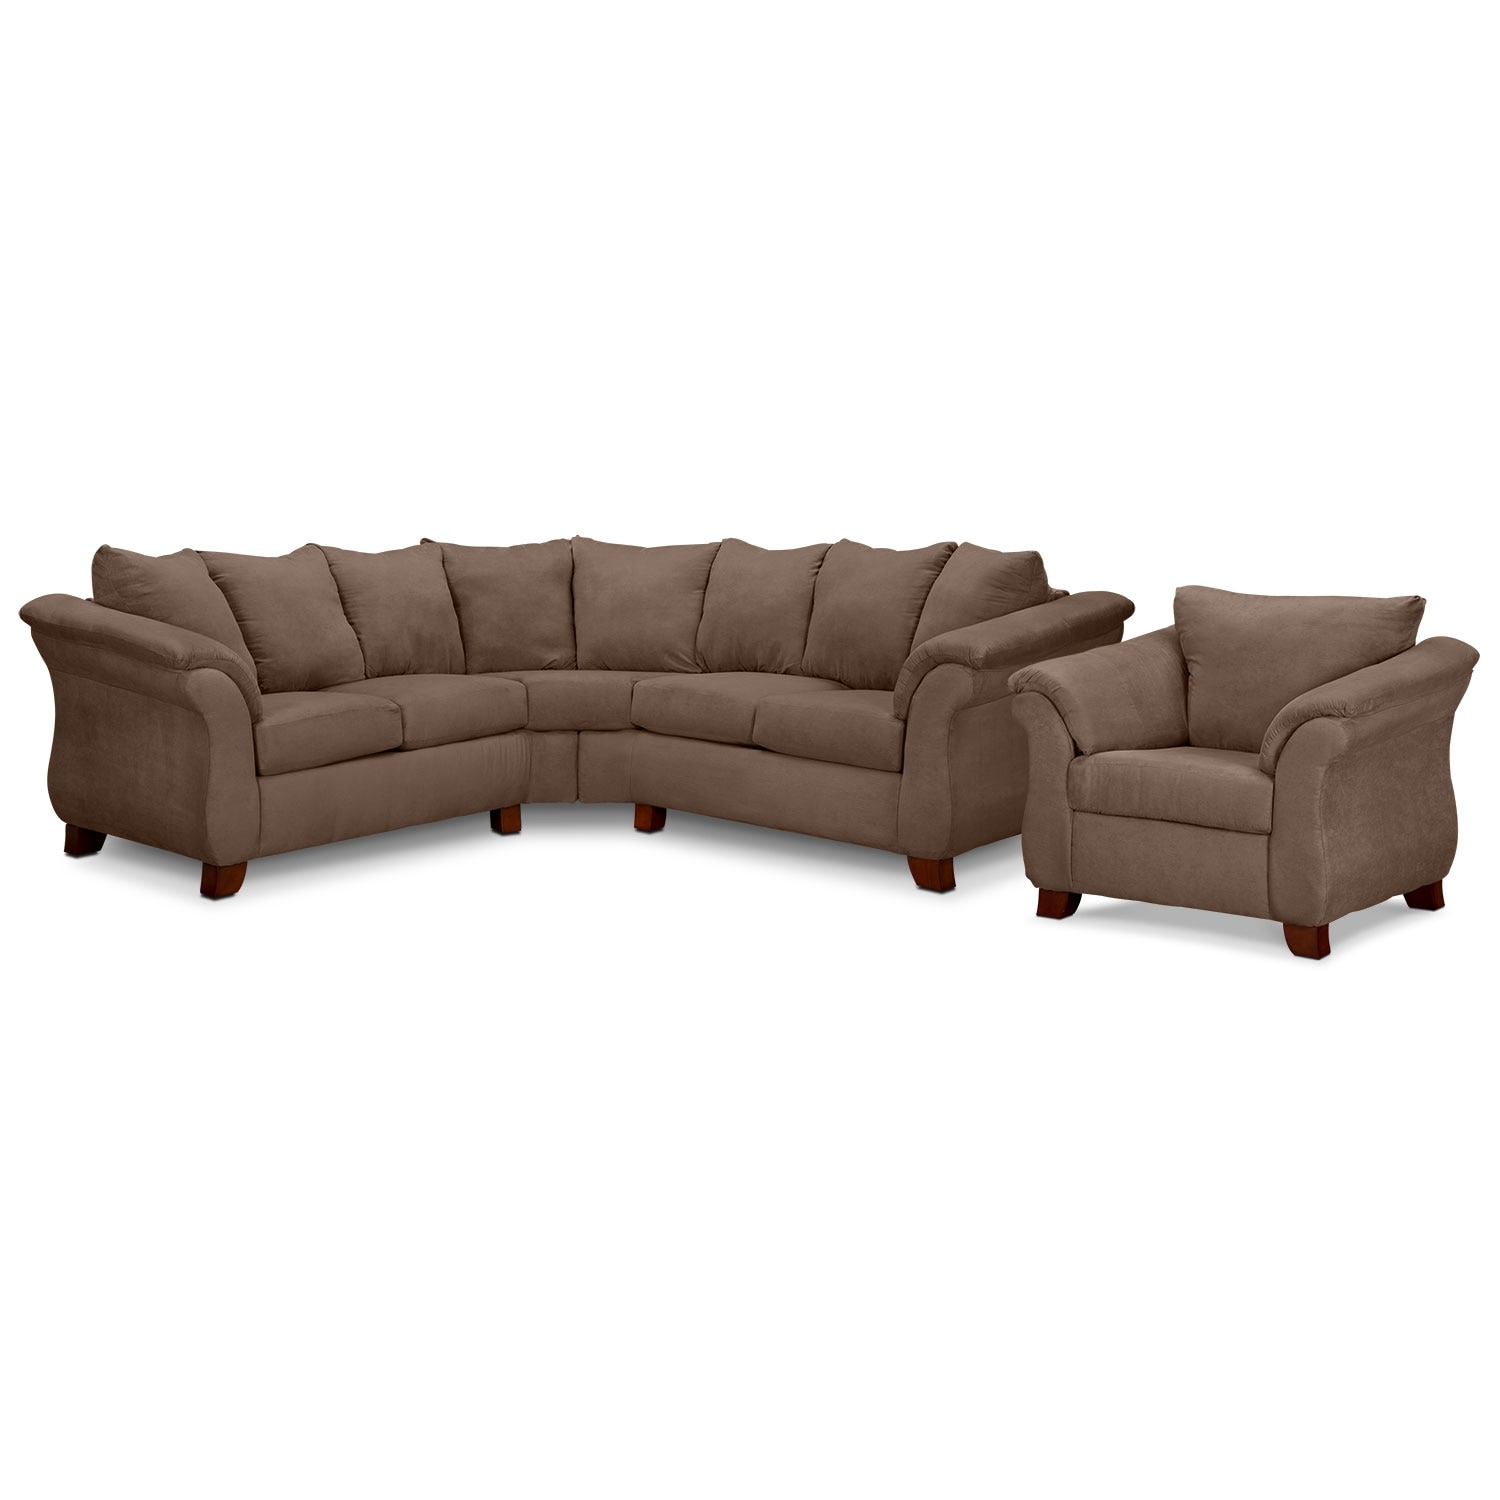 Living Room Furniture - Adrian Taupe II 2 Pc. Sectional and Chair